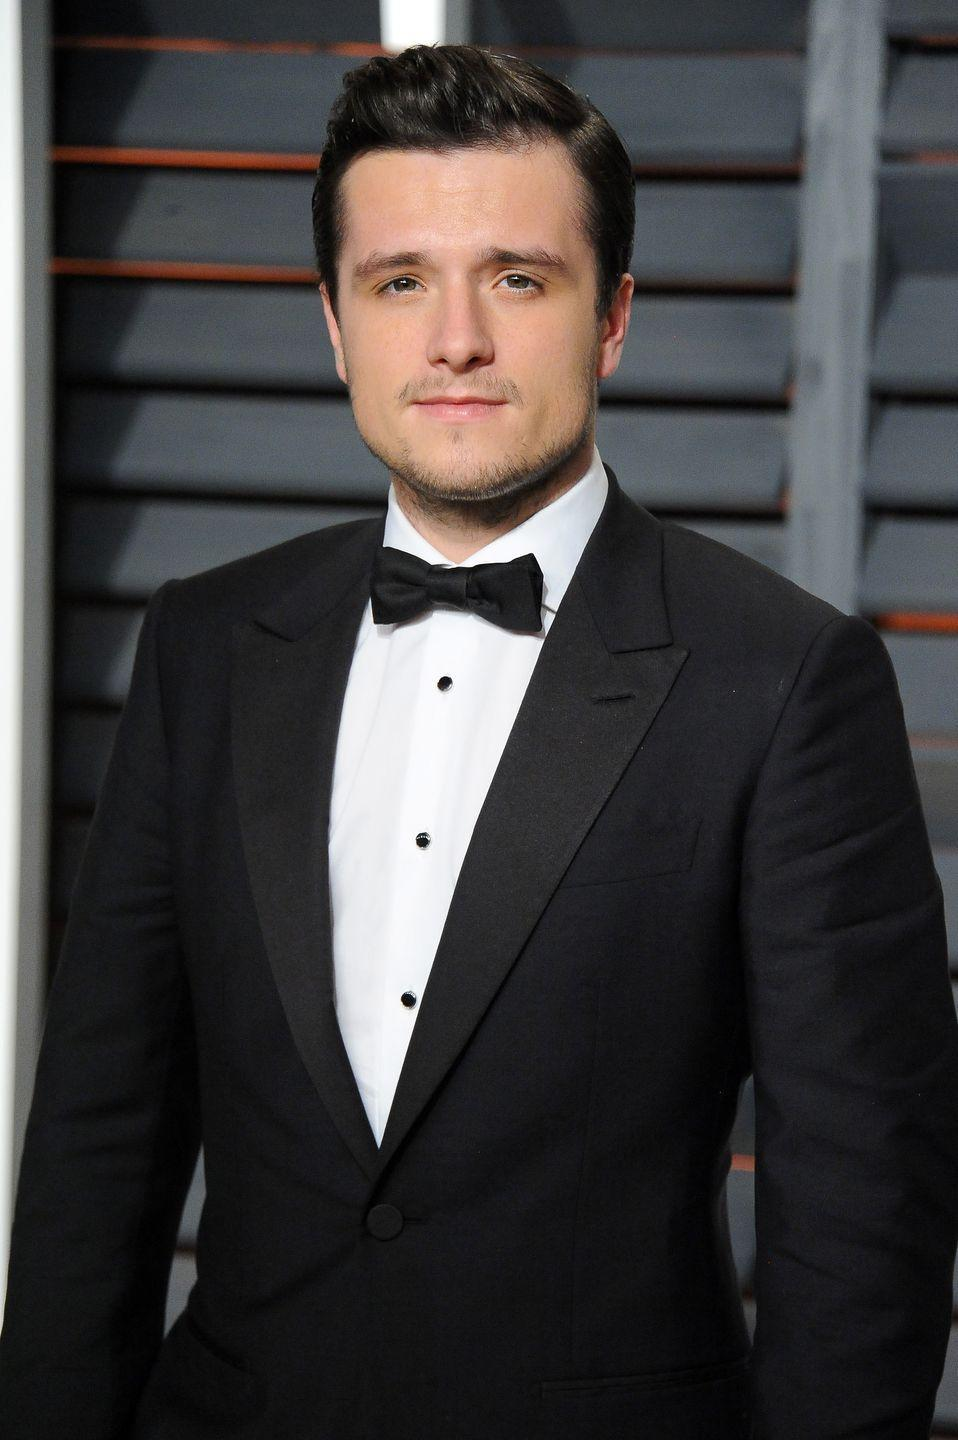 "<p>A little slobber is nothing for Josh Hutcherson, who mastered the art of the awkward on-screen kiss at an early age. His first (ever!) kiss occurred when he was 11 years old in the film <em>Little Manhattan</em>. ""It was horrible,"" <a href=""https://www.seventeen.com/love/dating-advice/advice/g817/celebrity-first-kiss-stories/?slide=1"" rel=""nofollow noopener"" target=""_blank"" data-ylk=""slk:he told Seventeen magazine."" class=""link rapid-noclick-resp"">he told <em>Seventeen</em> magazine.</a> ""I had a crew of, like, 50 people standing around watching me and it was the most non-real, non-intimate that I could possibly have for my first kiss I think.""</p>"